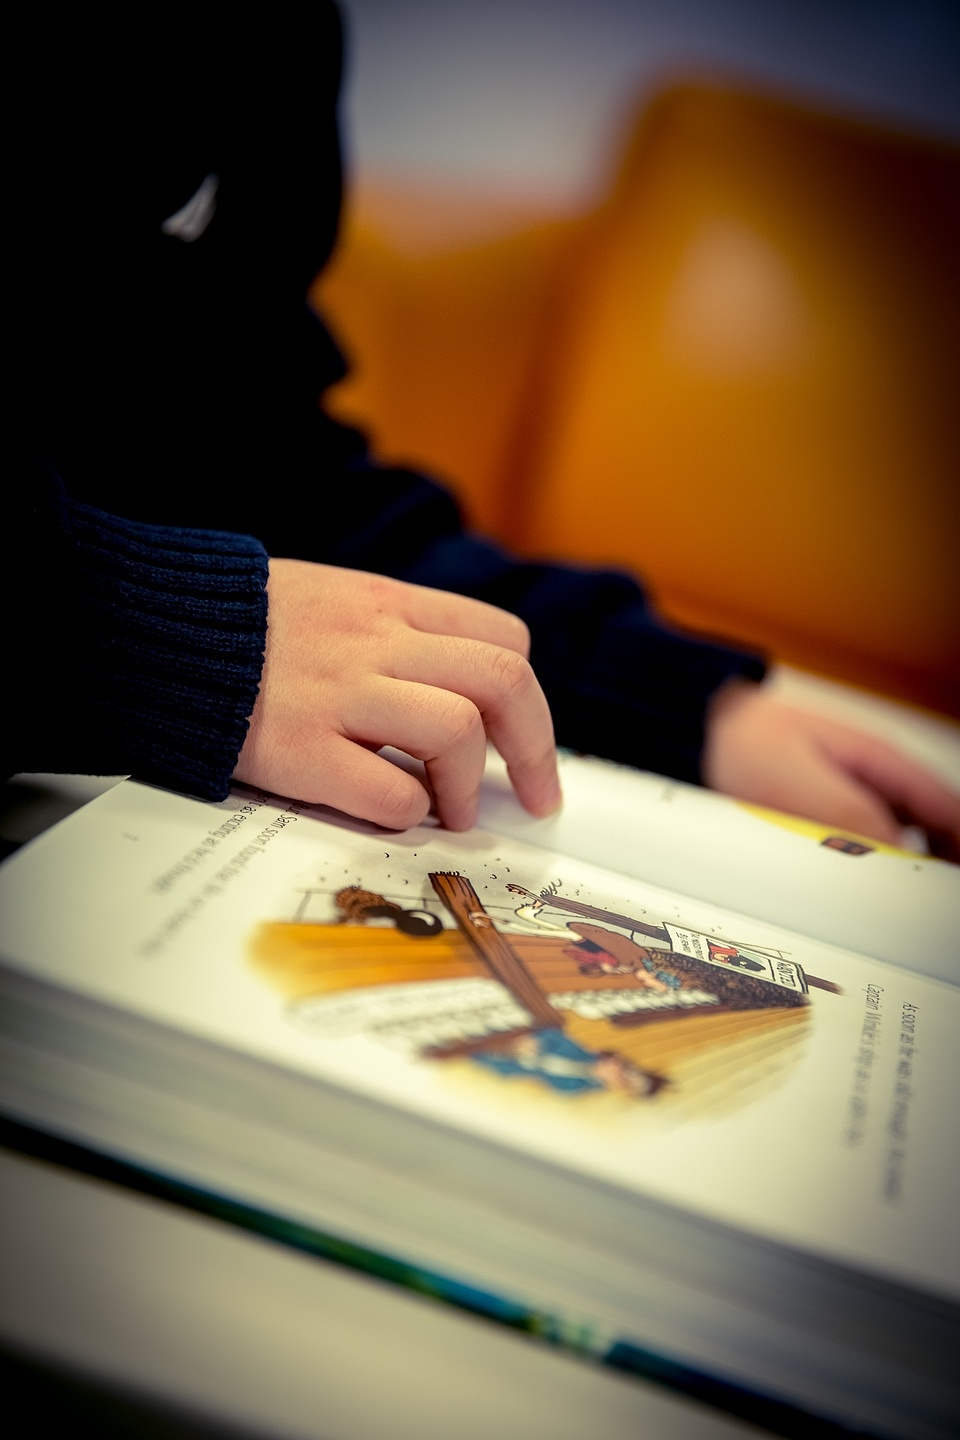 writing-hand-book-reading-color-child-1323962-pxherecom-100334.jpg